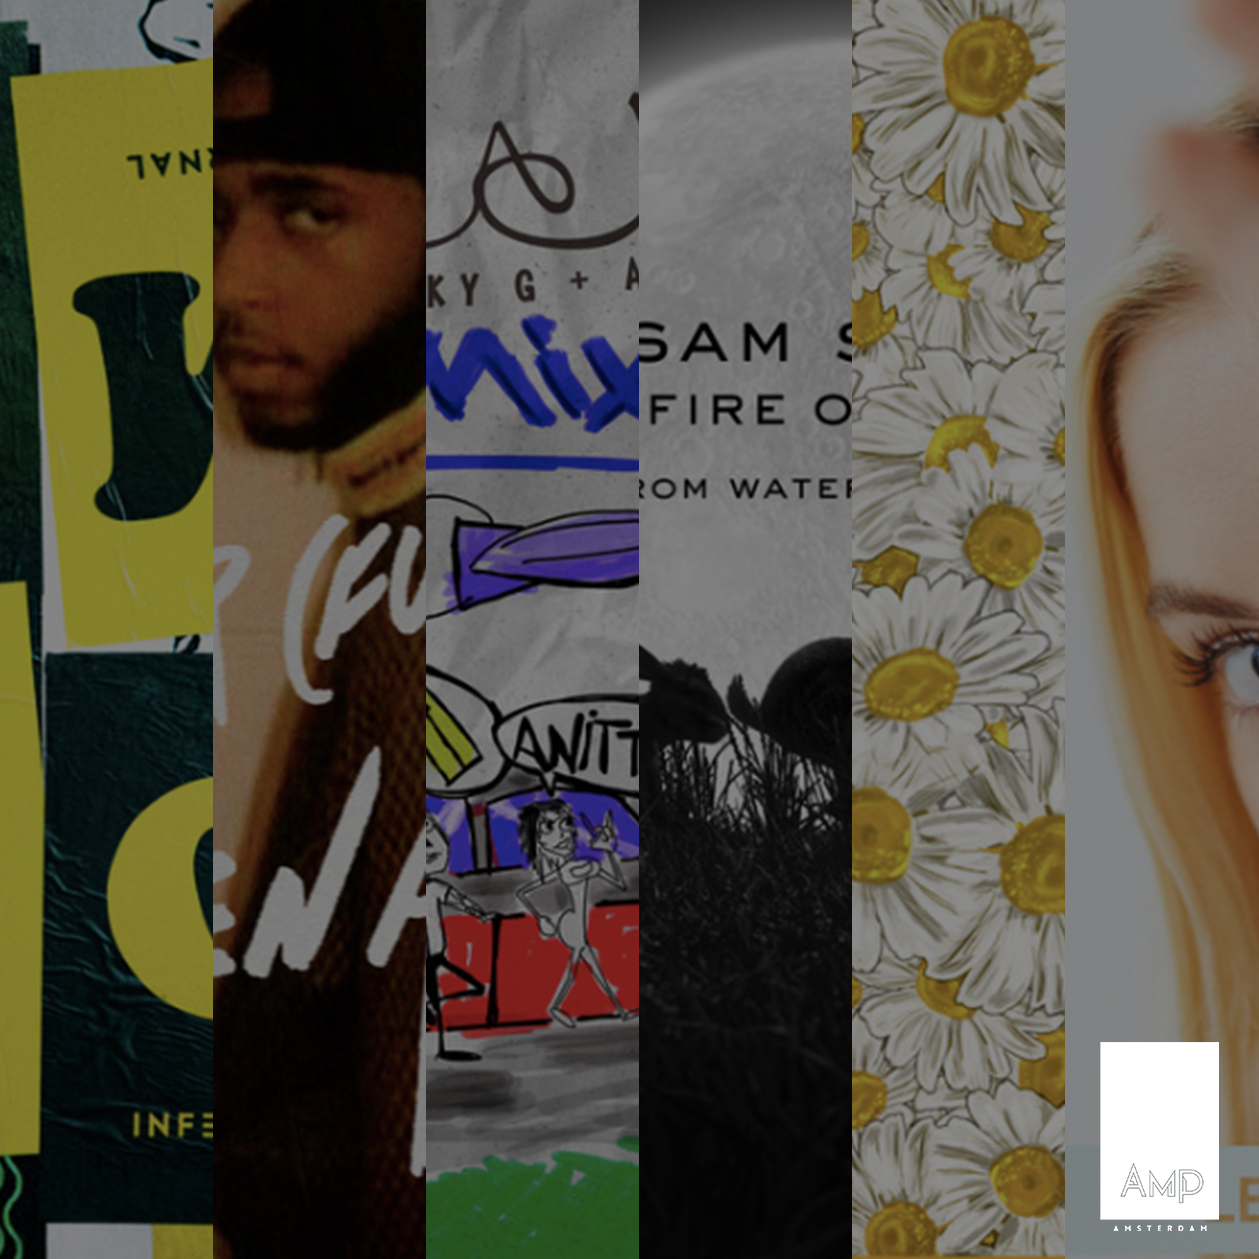 New music from Sody, Bad Sounds & Broods, Sam Smith, Maluma & Becky